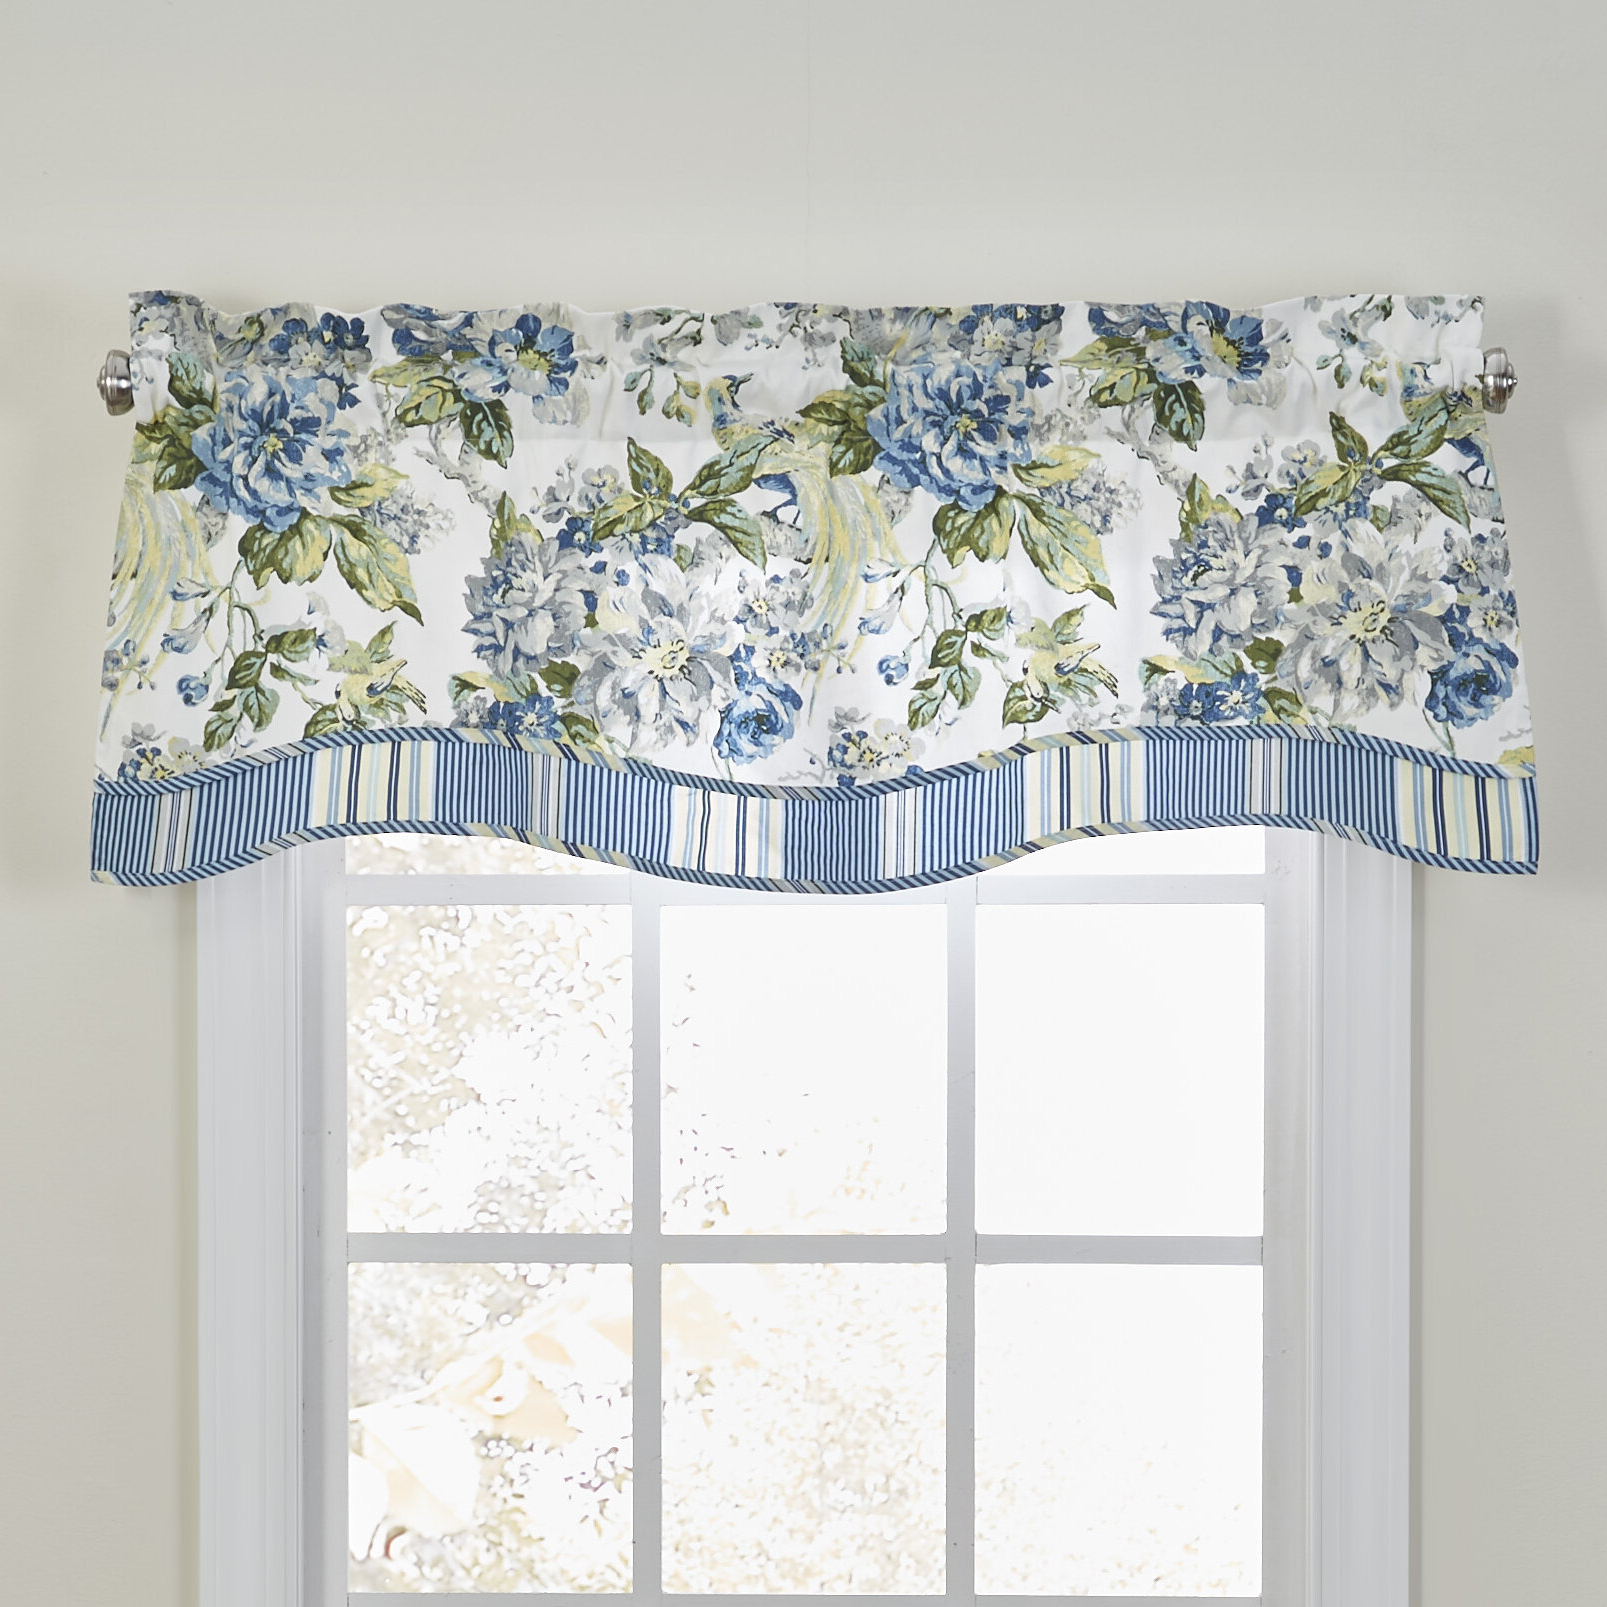 Floral Engagement Curtain Valance For Newest Floral Pattern Window Valances (View 17 of 20)